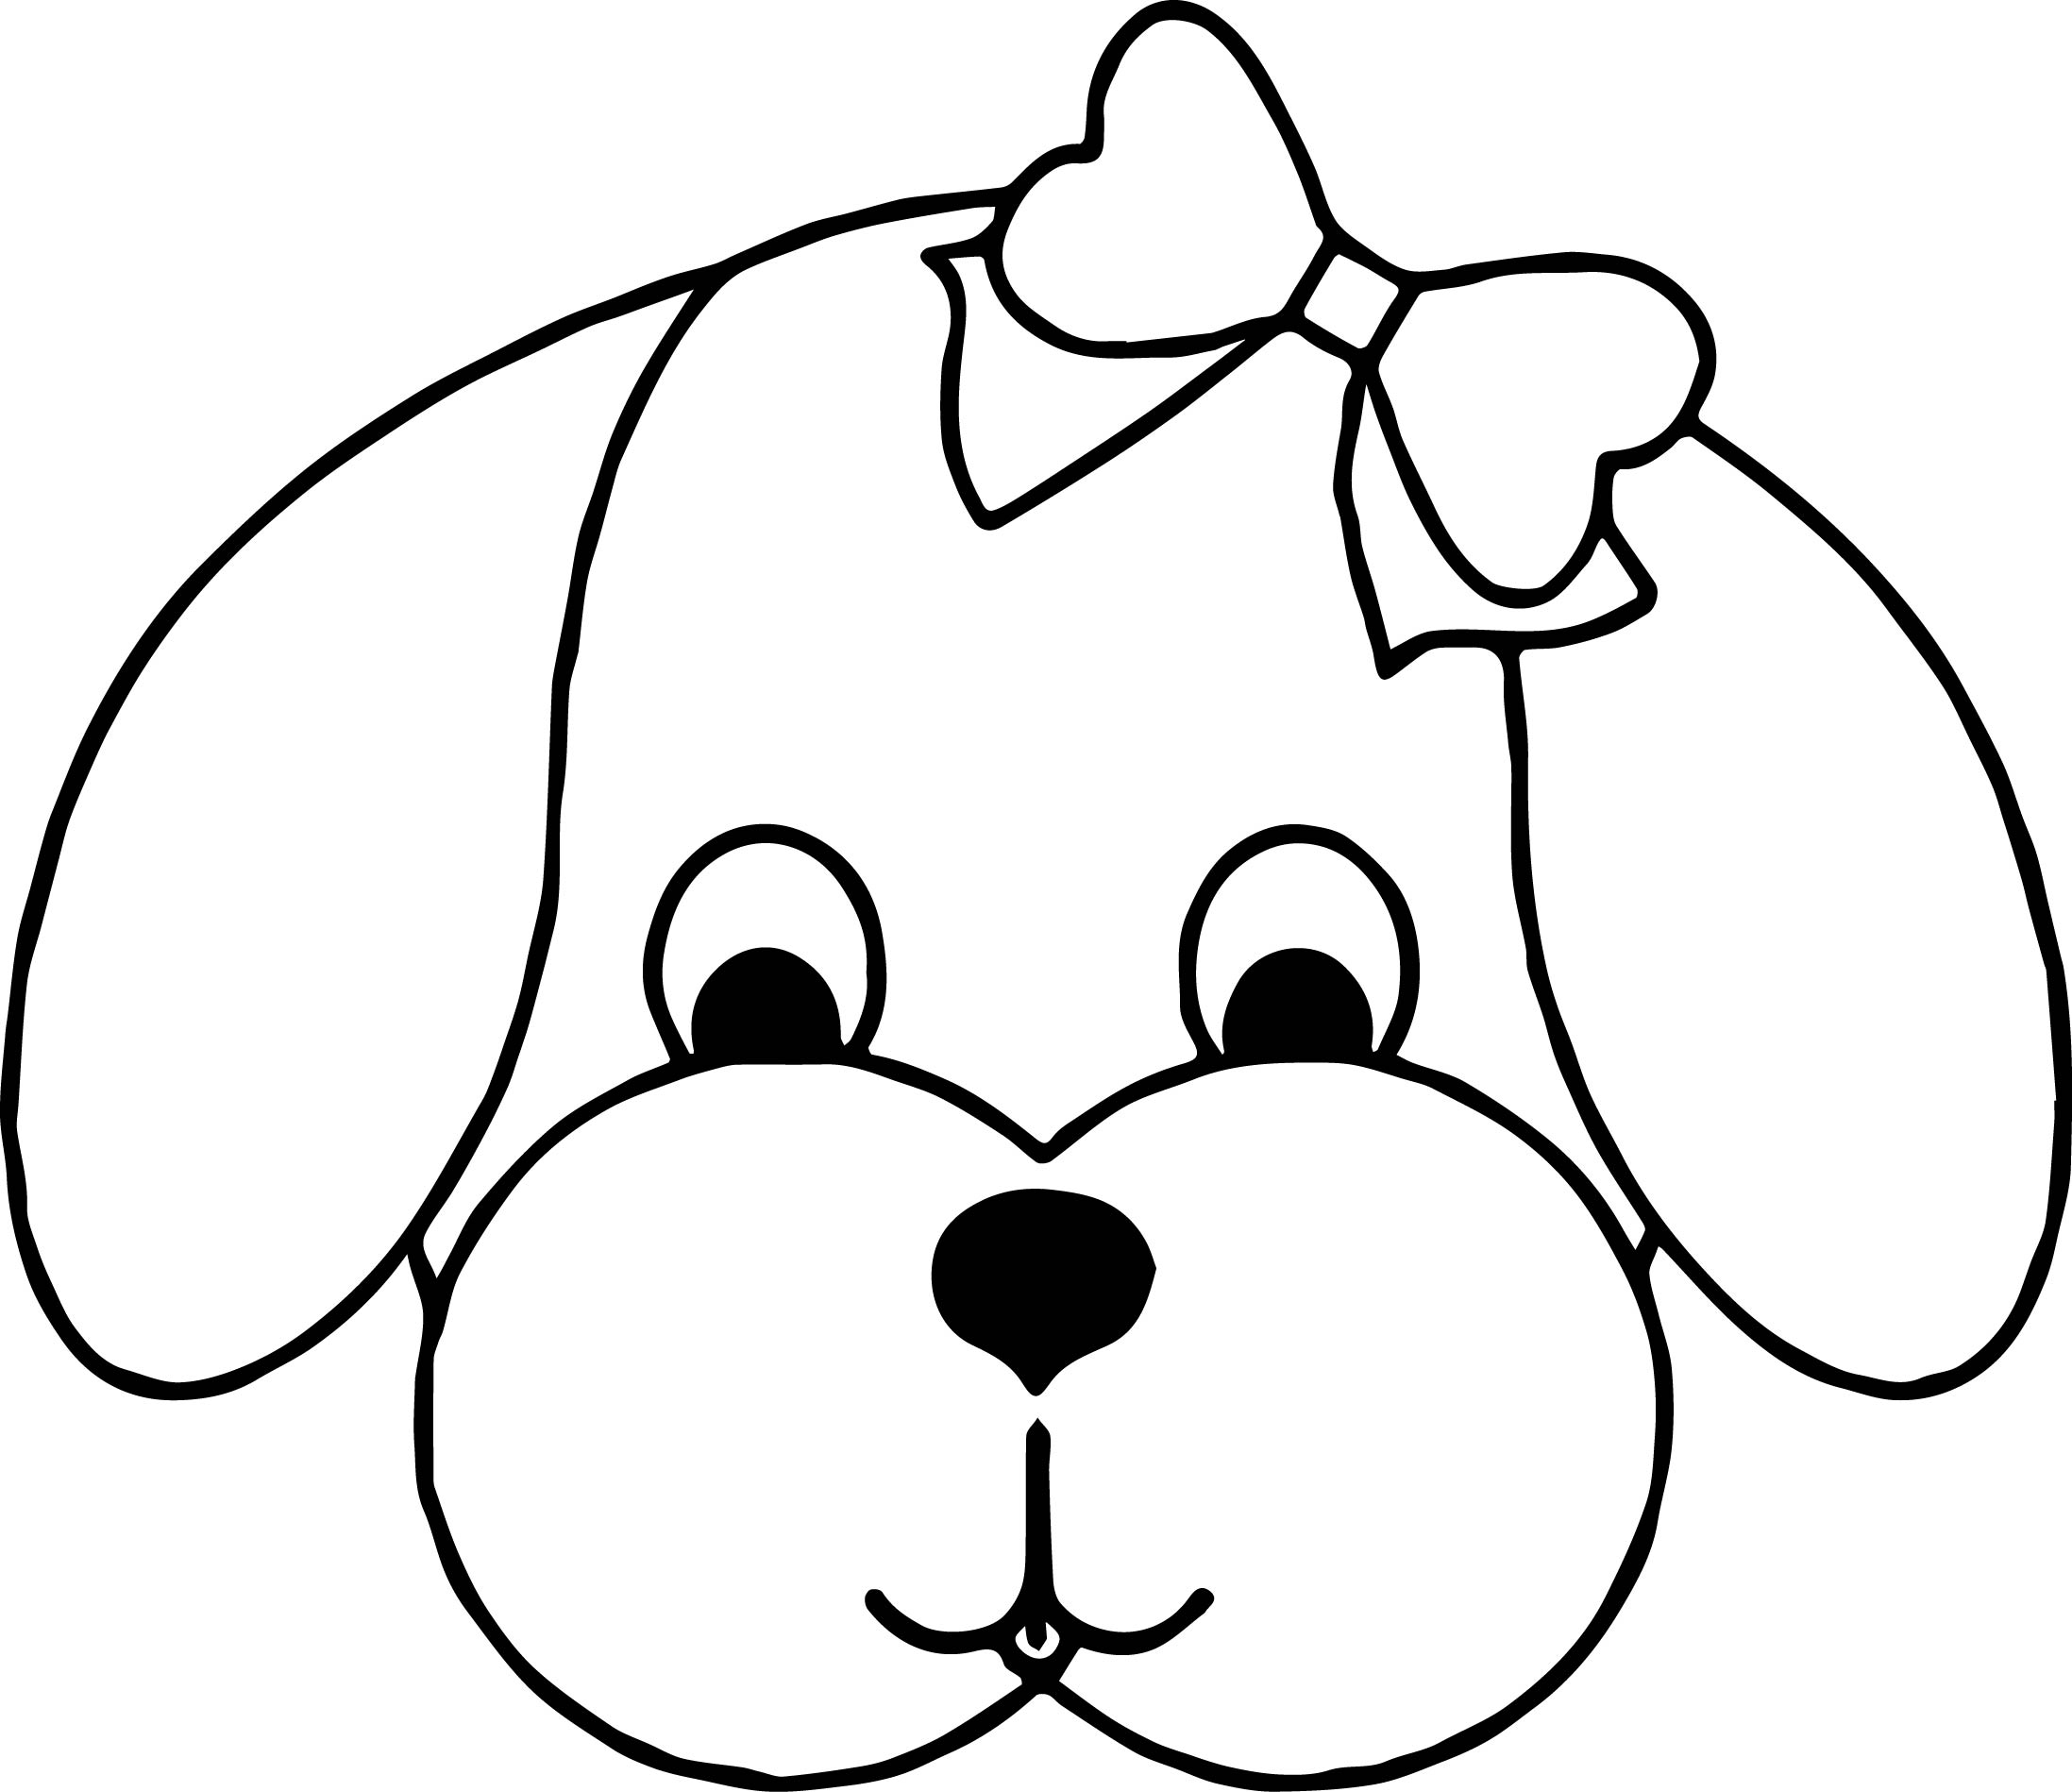 dog coloring picture 9 puppy coloring pages jpg ai illustrator download picture coloring dog